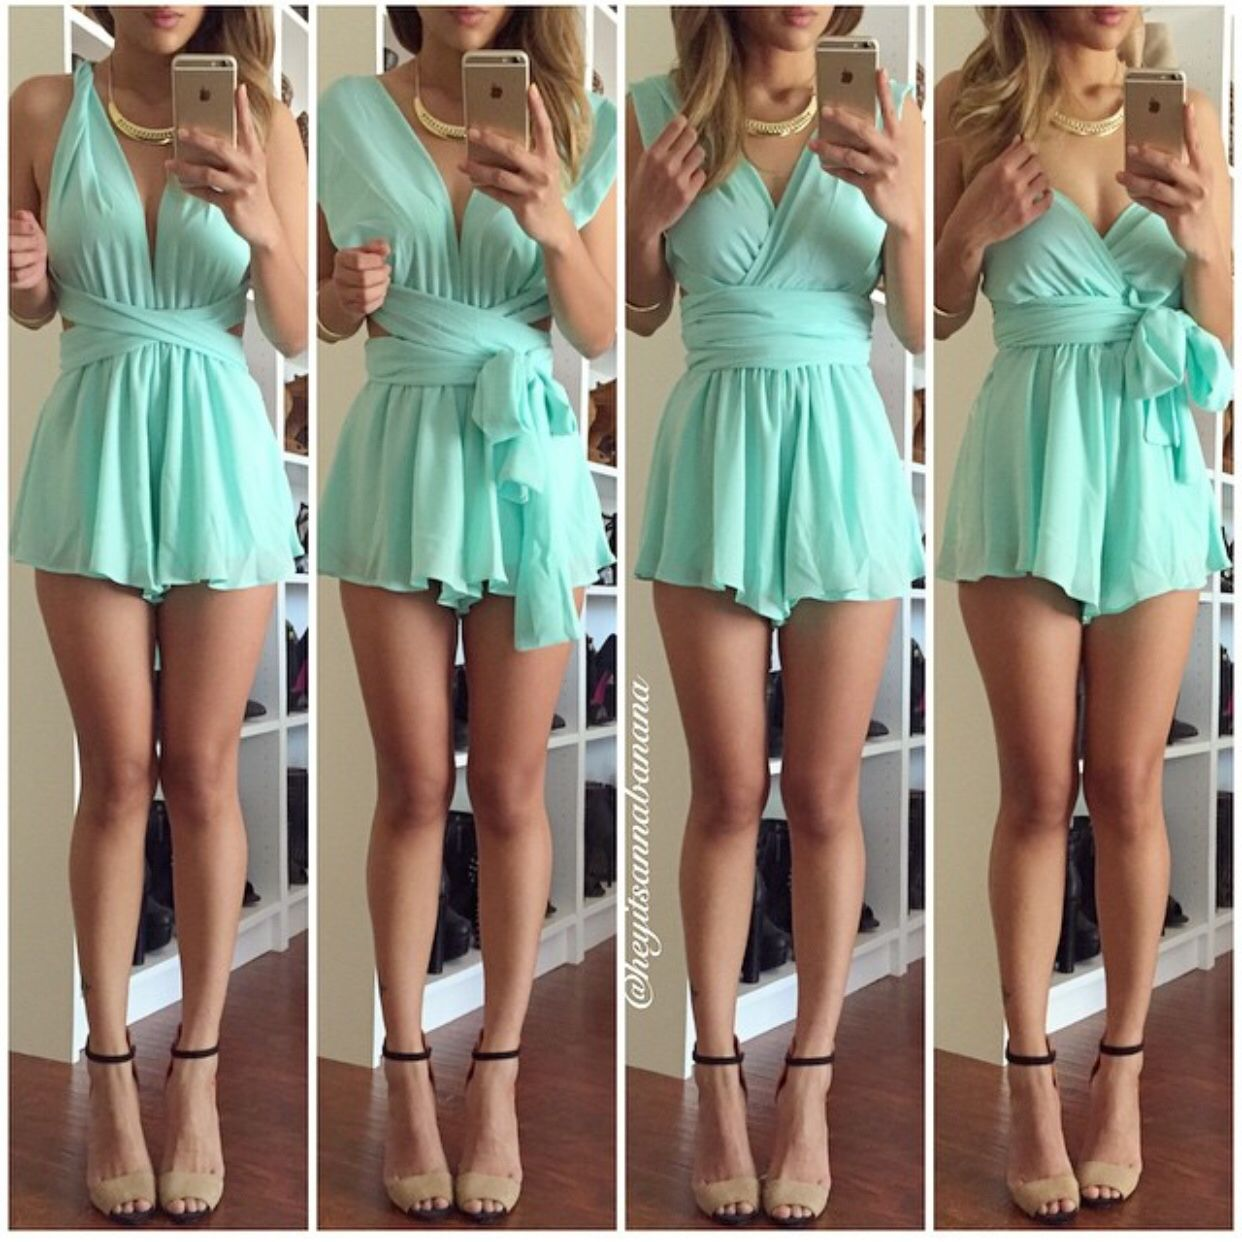 From lushfox so cute fashion pinterest clothes legs and nice